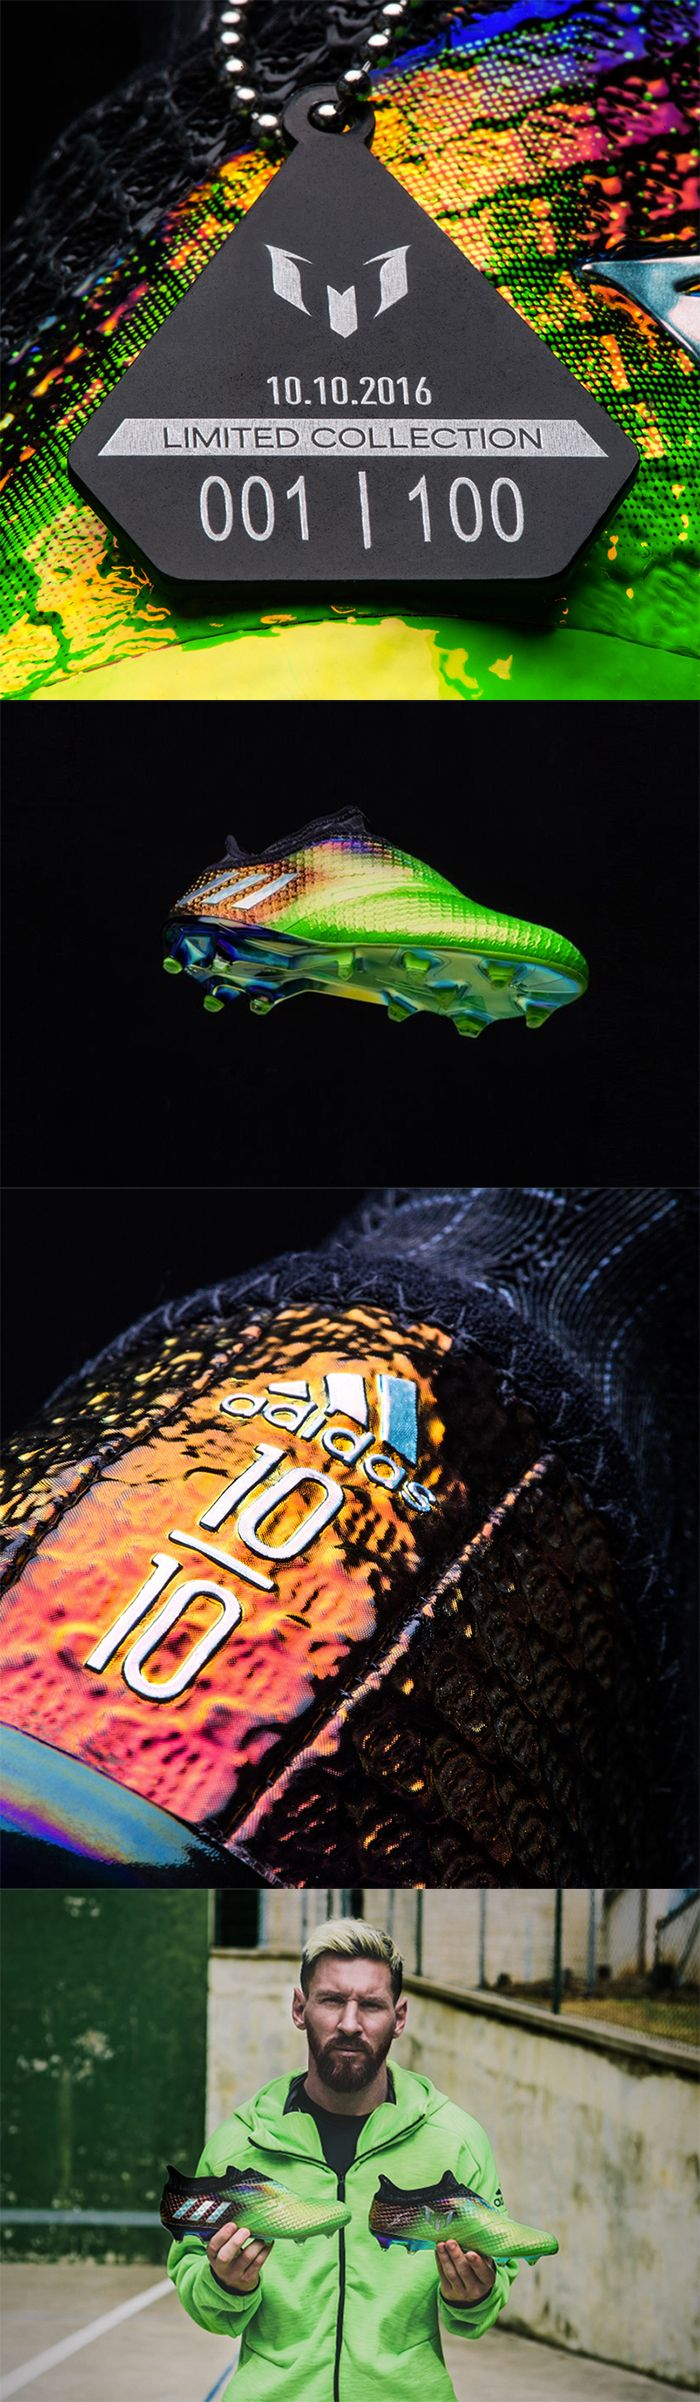 ADIDAS REVEAL LIMITED EDITION MESSI 10/10 CLEATS  adidas is celebrating the best #10 in the world, Lionel Messi, with a special limited edition release of the Messi 10/10 cleats on Monday, October 10.  The cleats are a collector's item with only 100 pairs made and all of them in size 8.5, Messi's shoe size, and retail for $400.00.